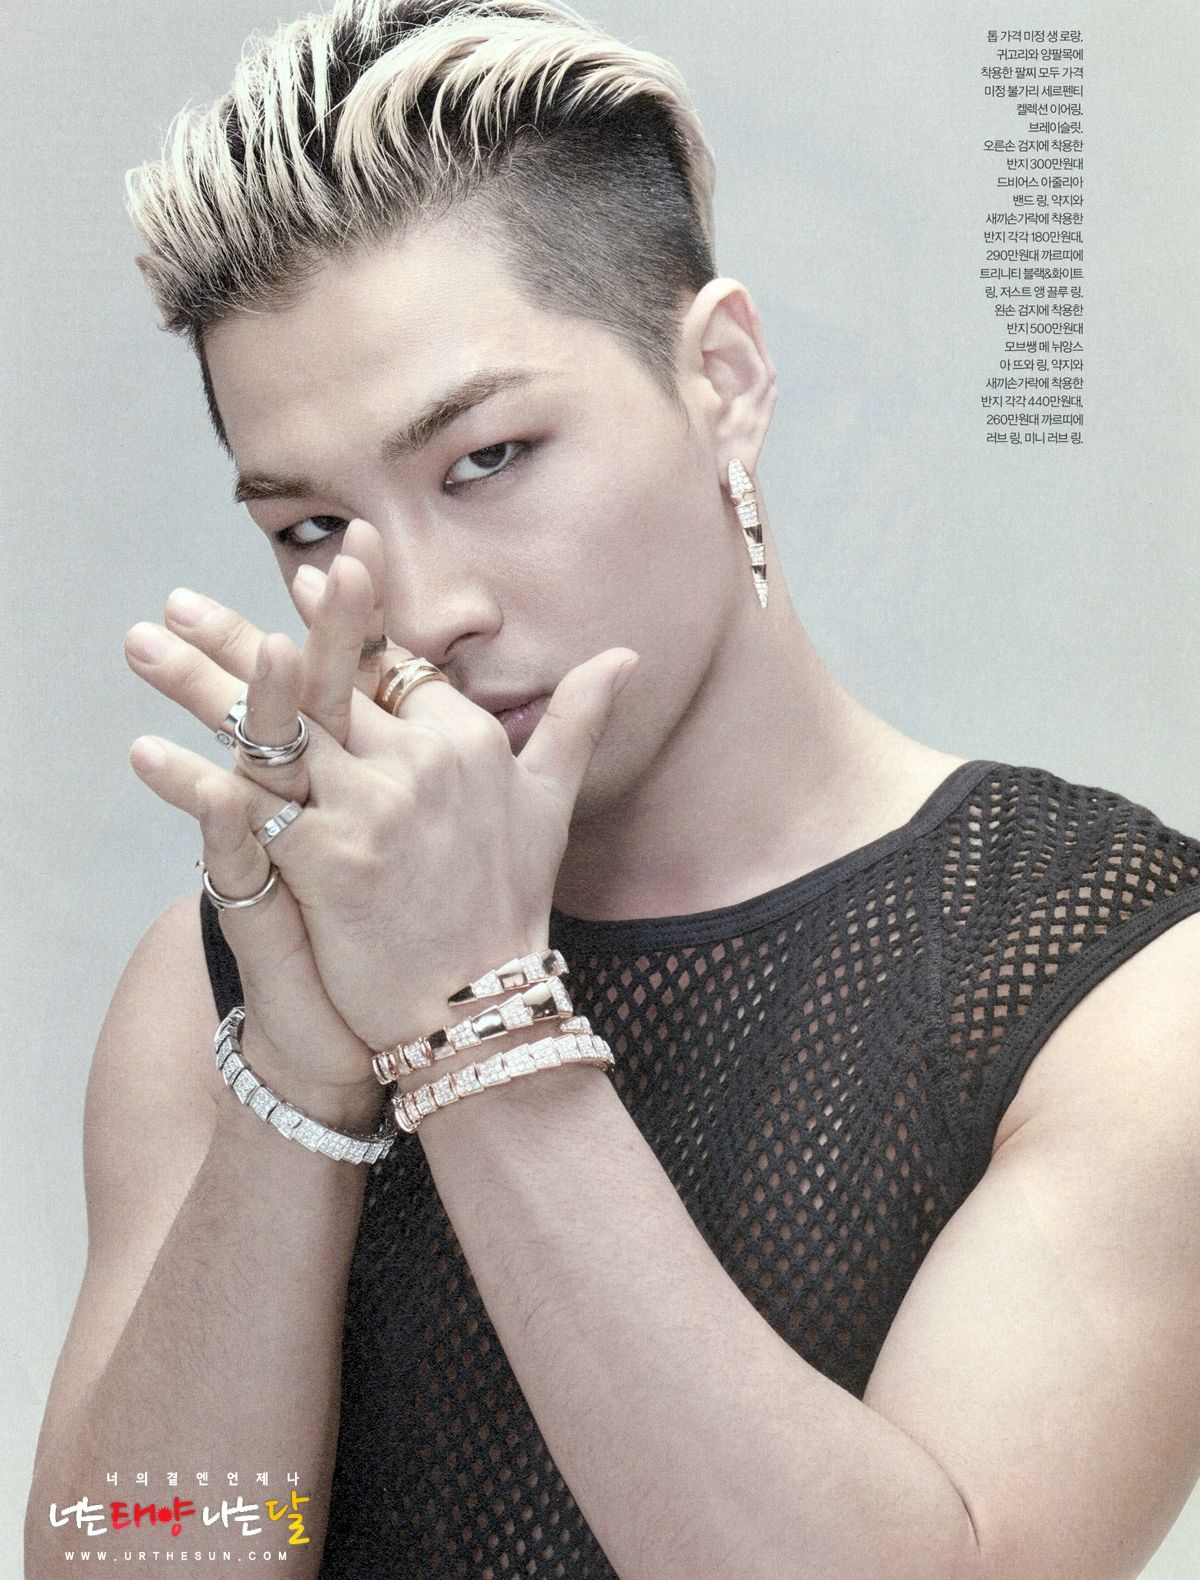 Taeyang In Esquire Korea February 2014 HQ Scans